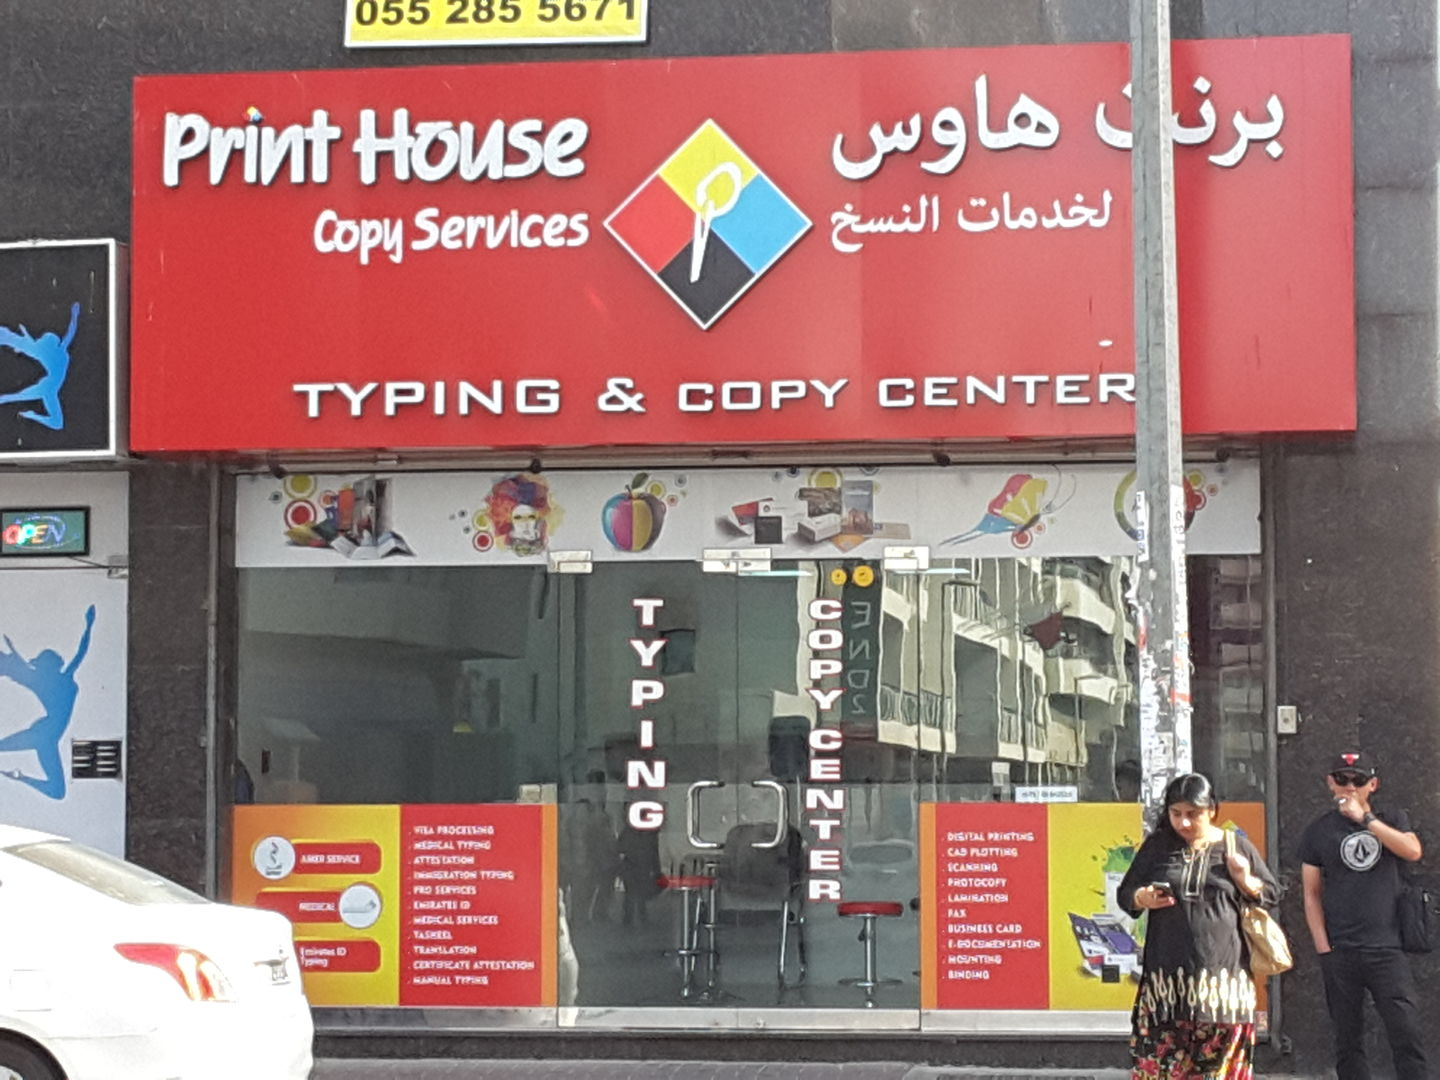 HiDubai-business-print-house-copy-services-government-public-services-printing-typing-services-al-raffa-al-raffa-dubai-2